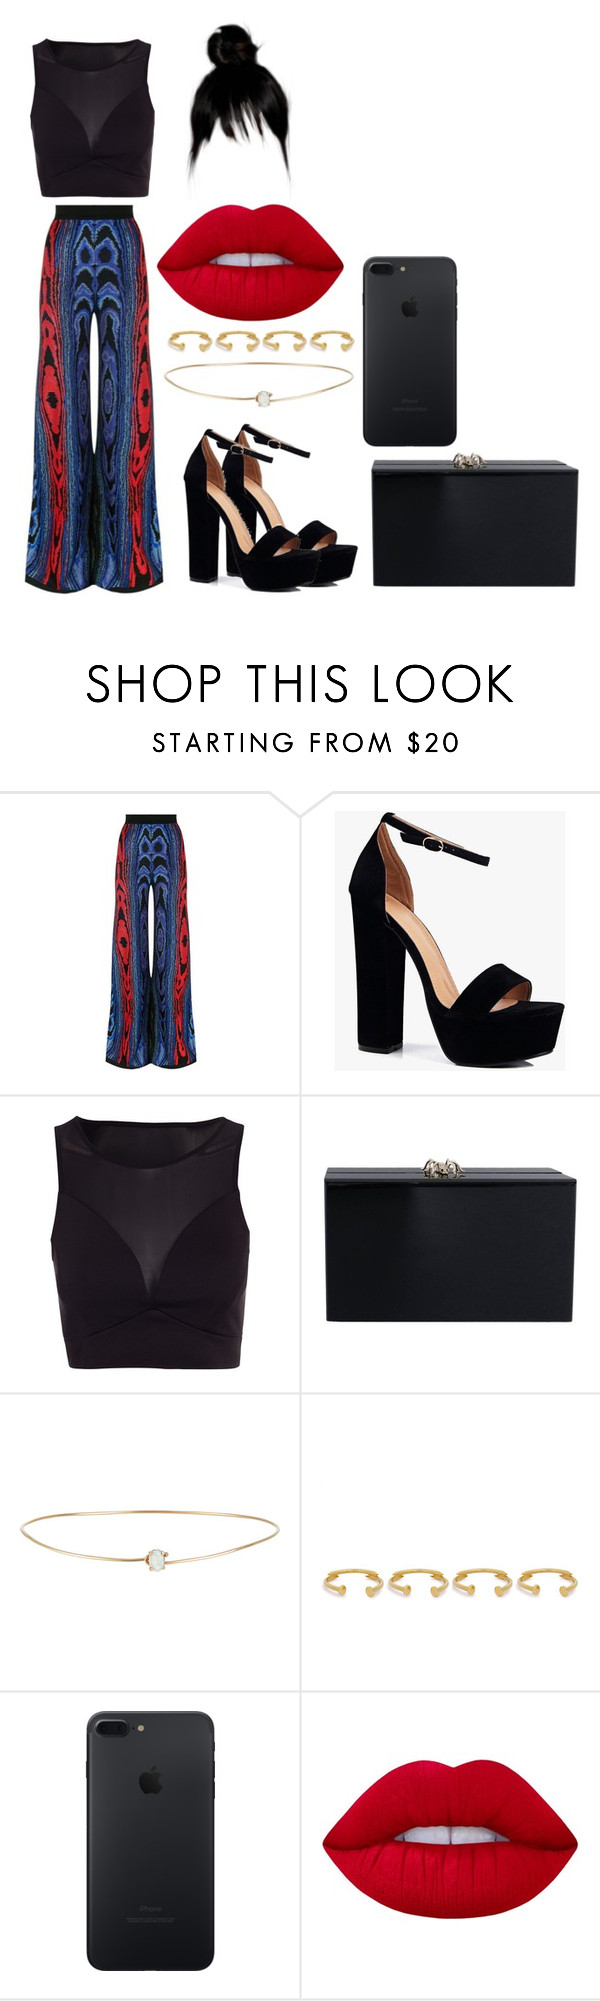 """""""Sin título #4797"""" by pauladtello ❤ liked on Polyvore featuring Balmain, Boohoo, Charlotte Olympia, Loren Stewart, Joanna Laura Constantine and Lime Crime"""